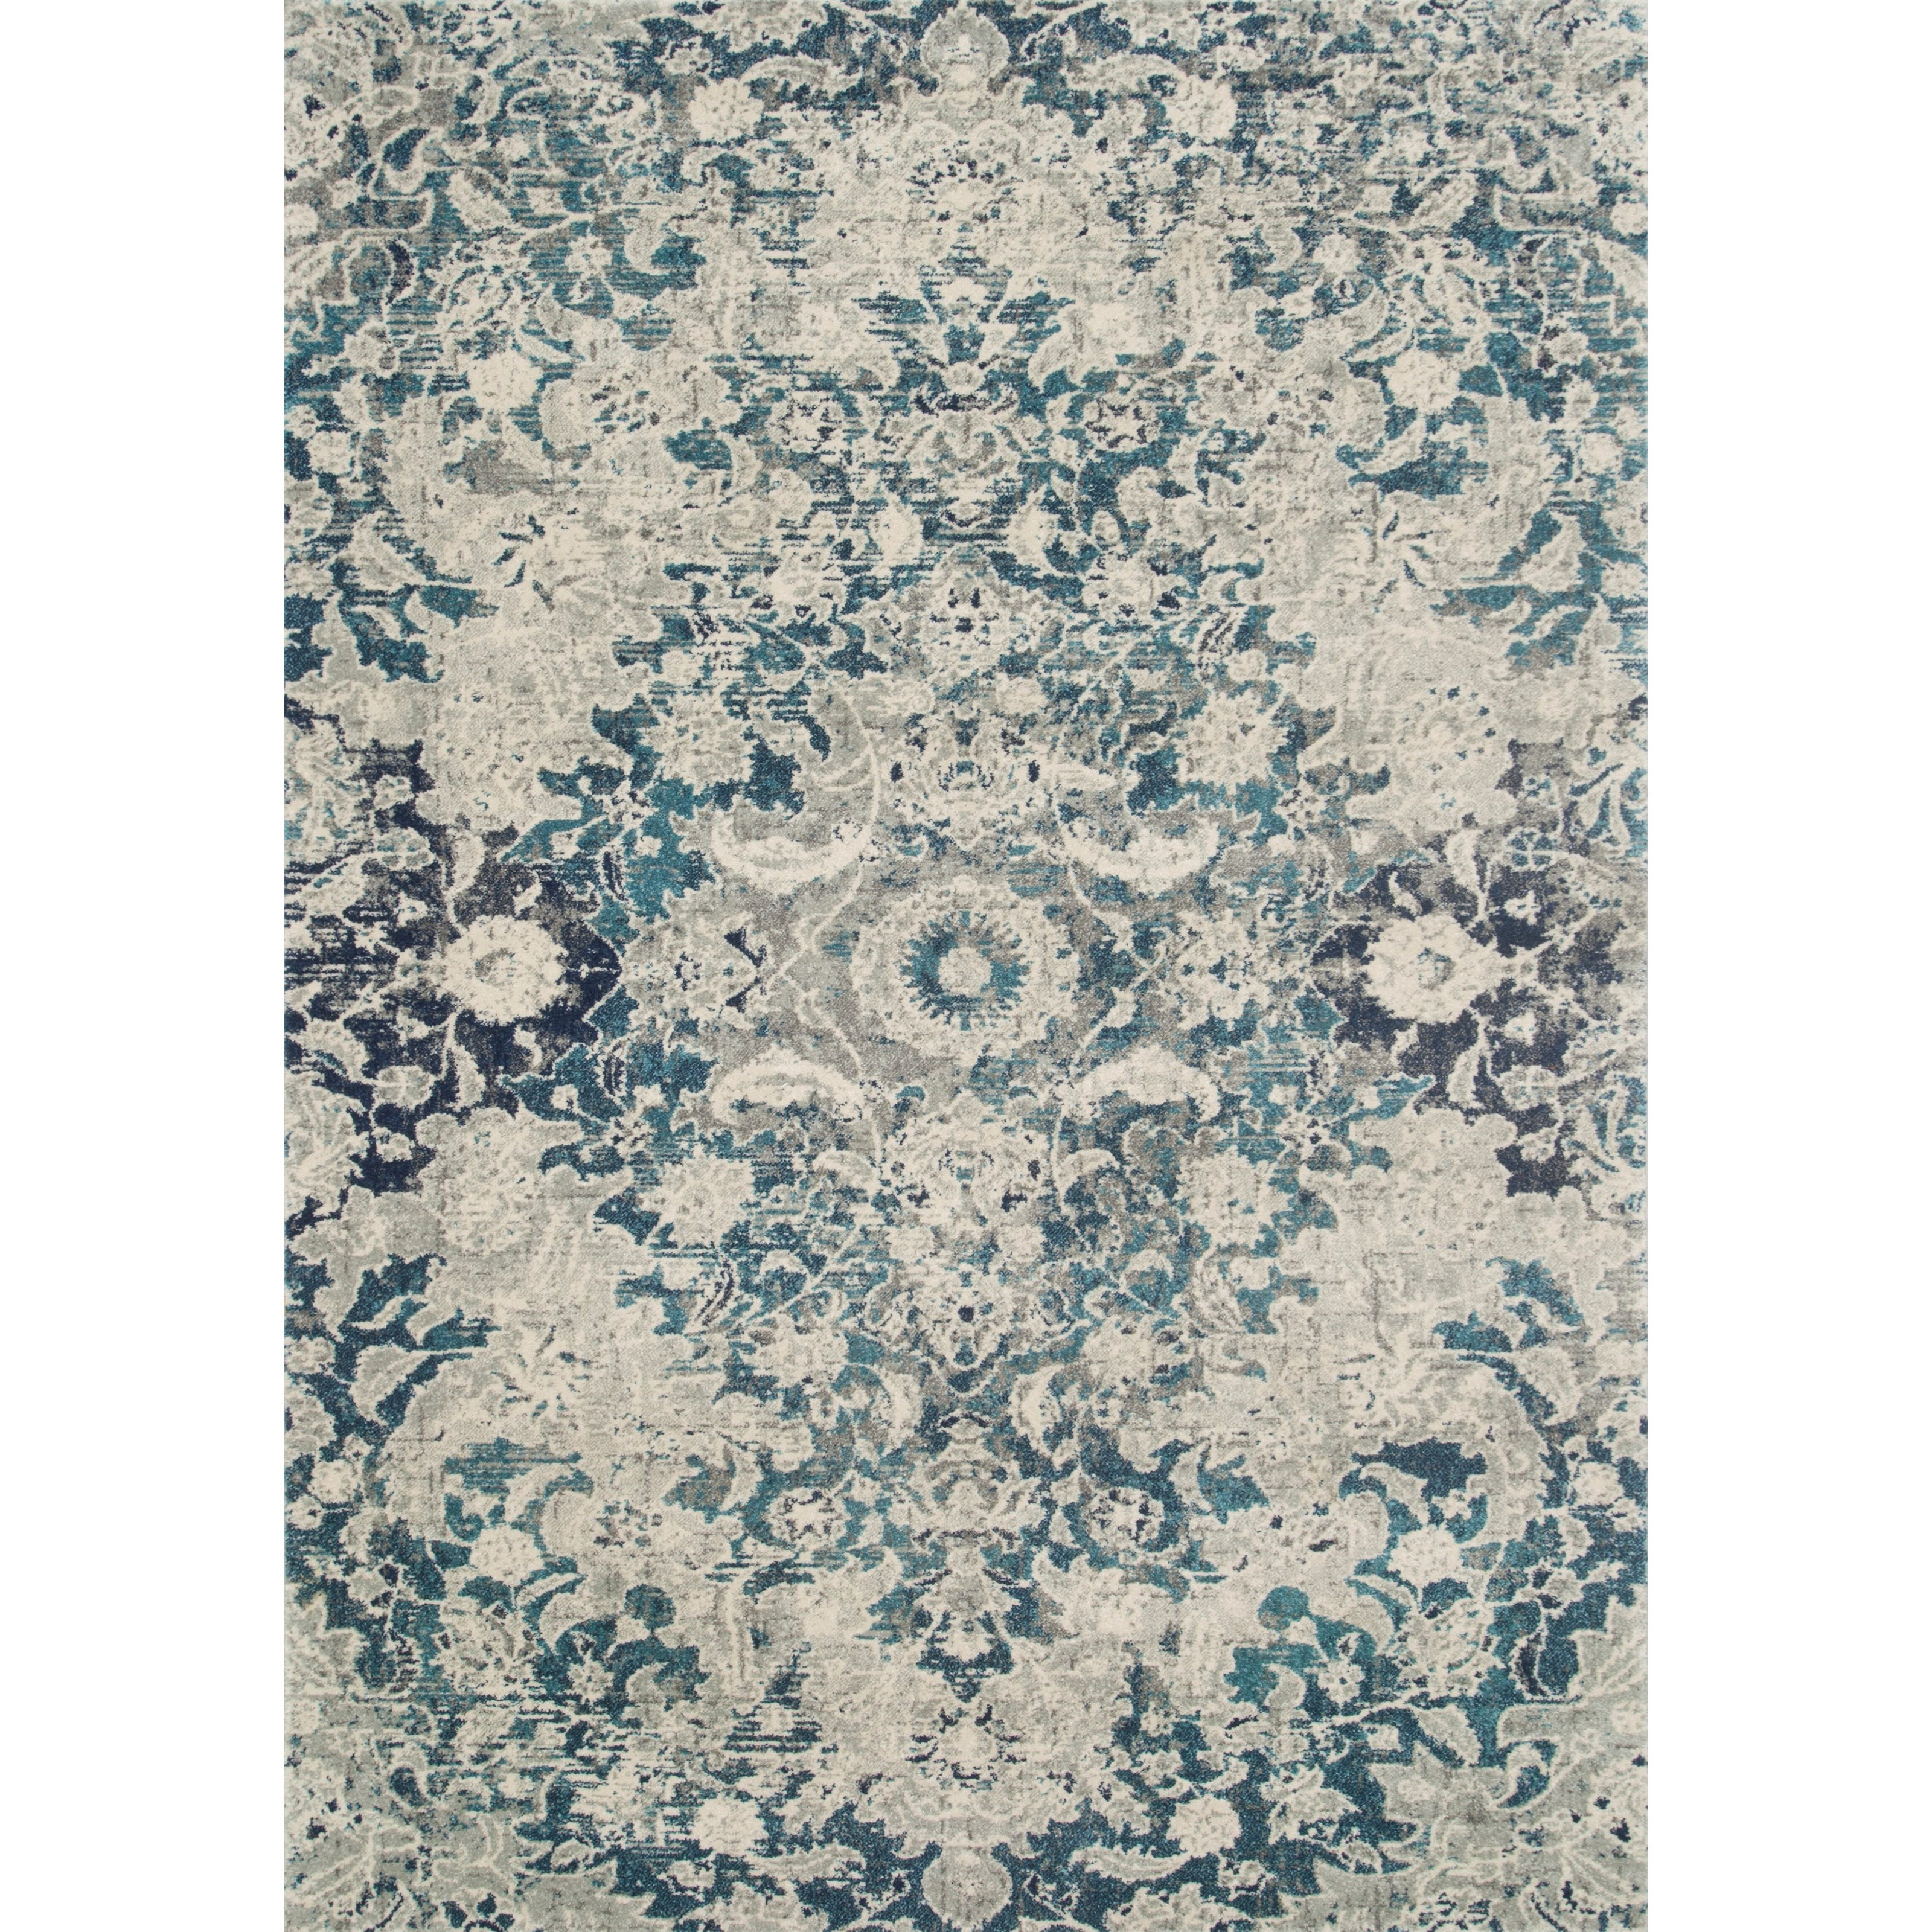 """Zehla 2'2"""" x 3'9"""" Ocean / Silver Rug by Loloi Rugs at Virginia Furniture Market"""